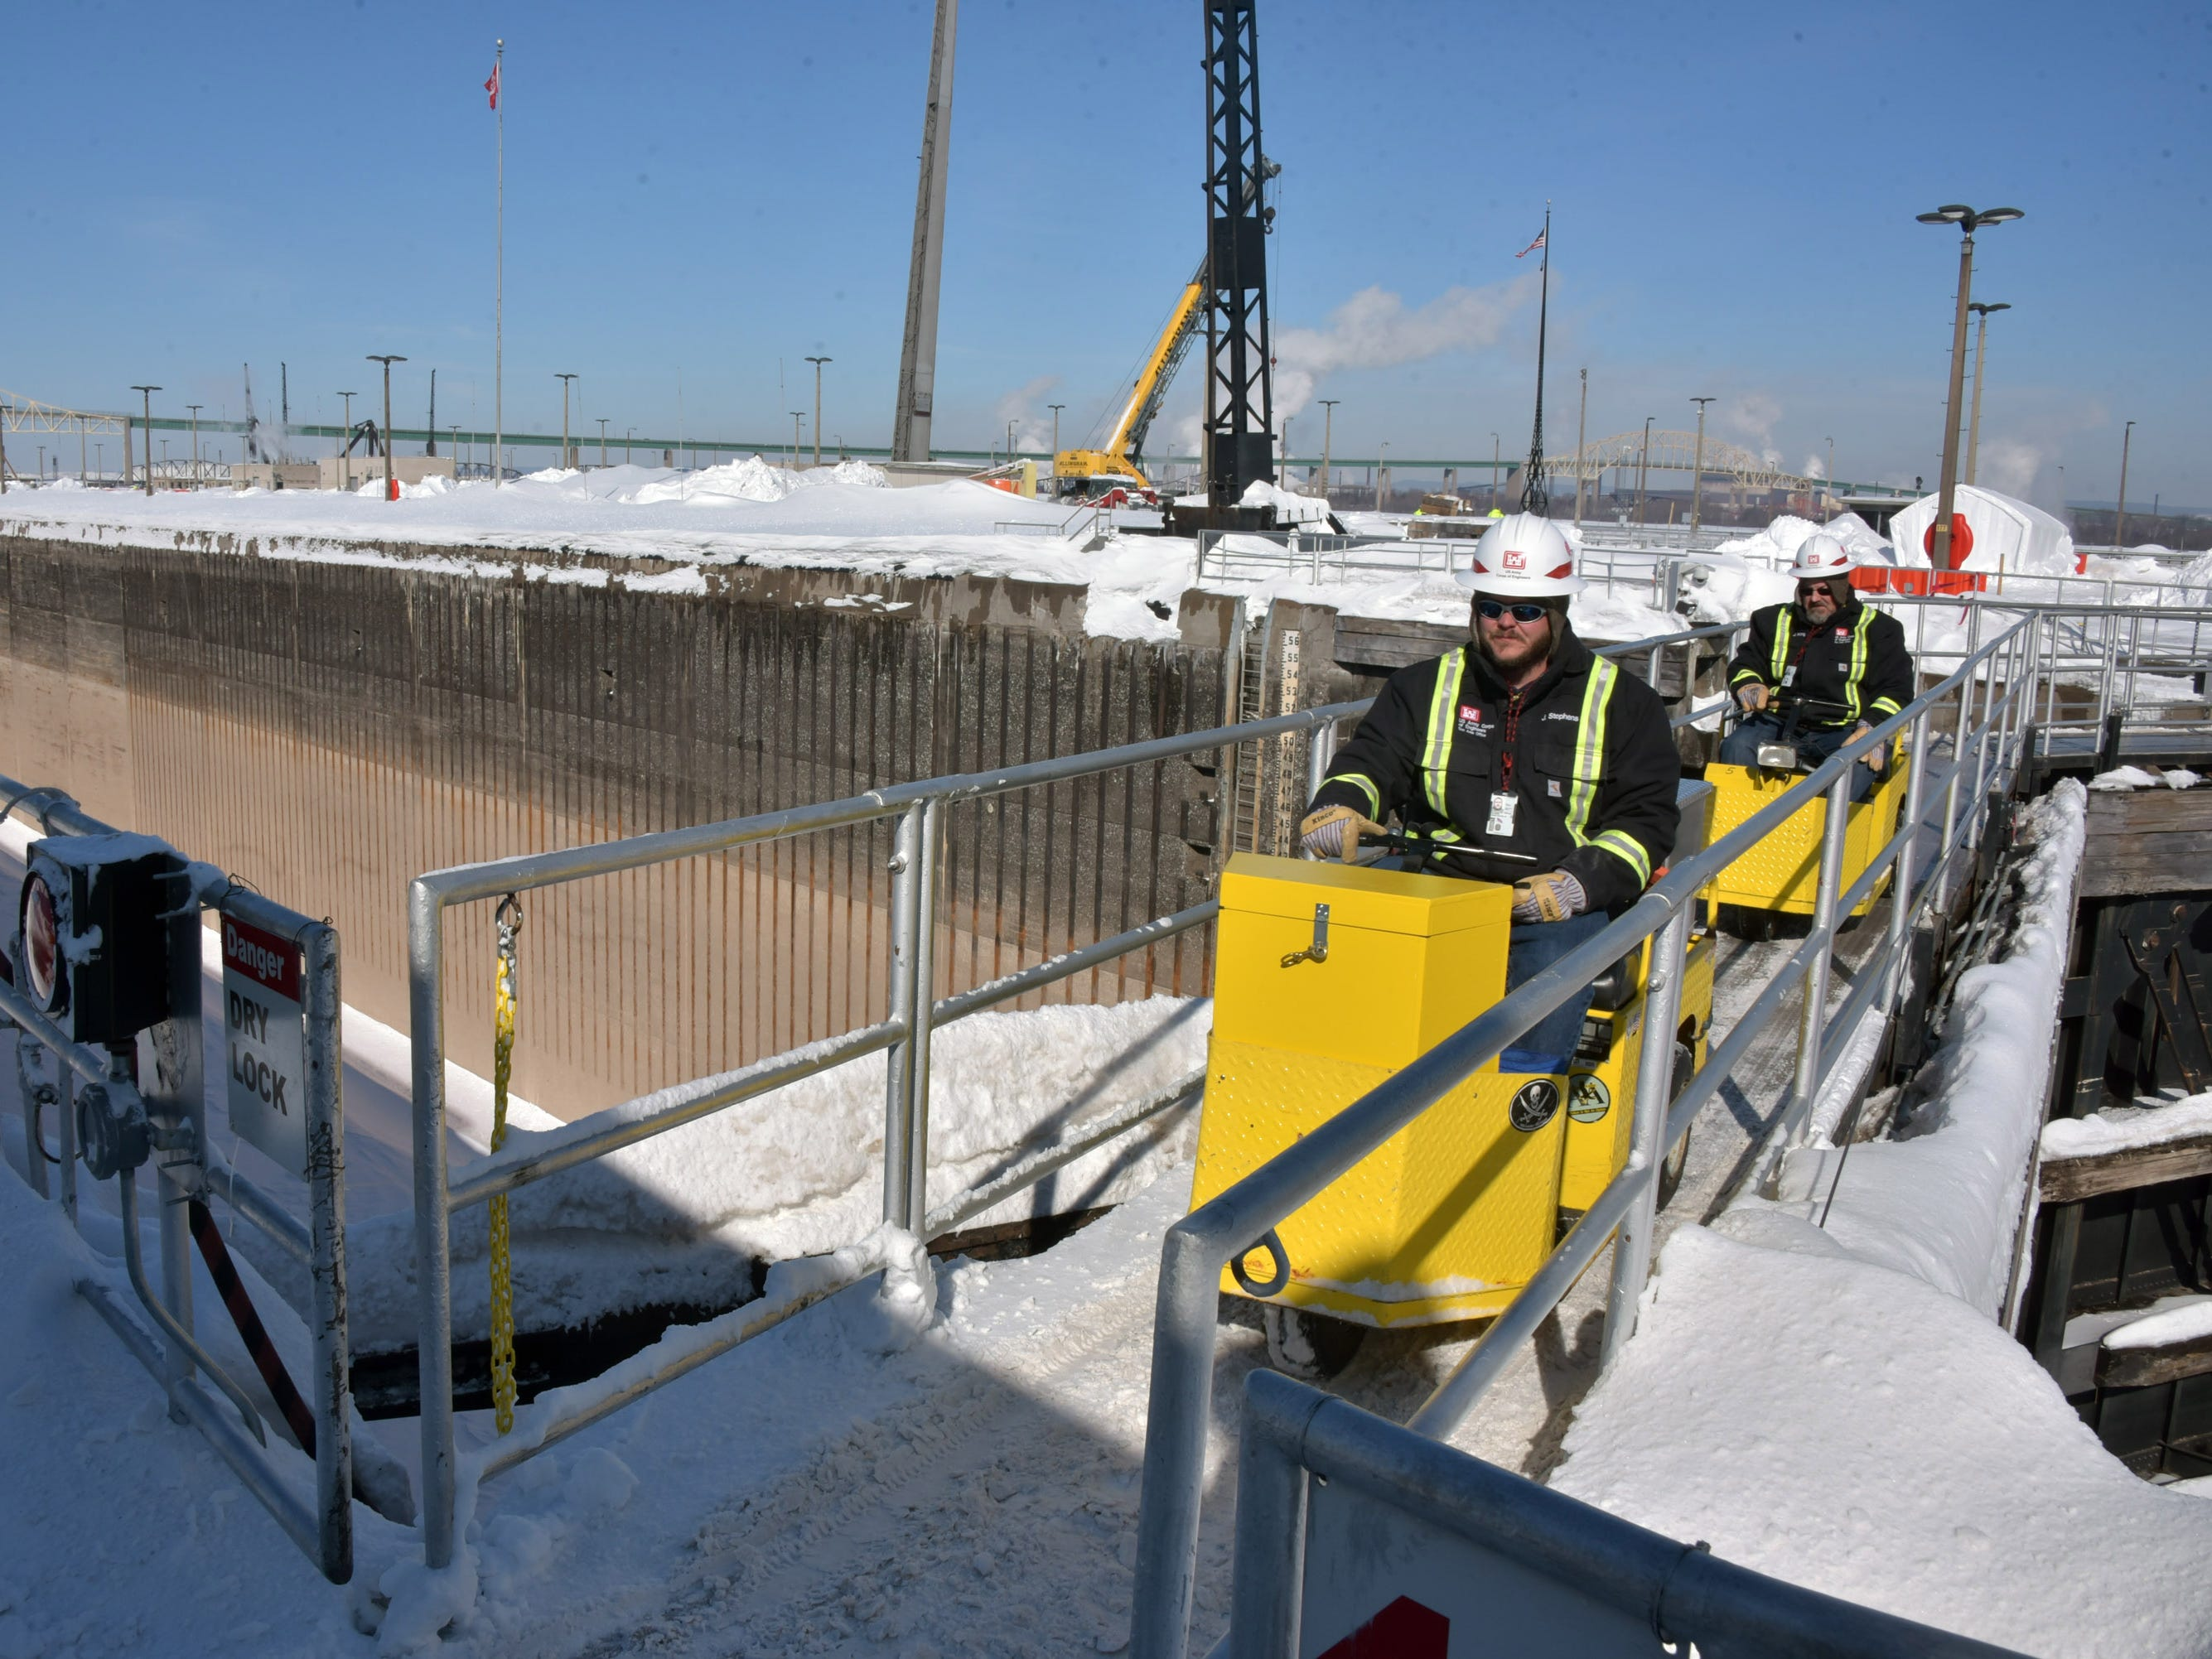 Two U.S. Corps of Engineers workmen drive scooters across a gate at the MacArthur Lock in Sault Ste. Marie. The electric scooters are used to move around the huge complex.